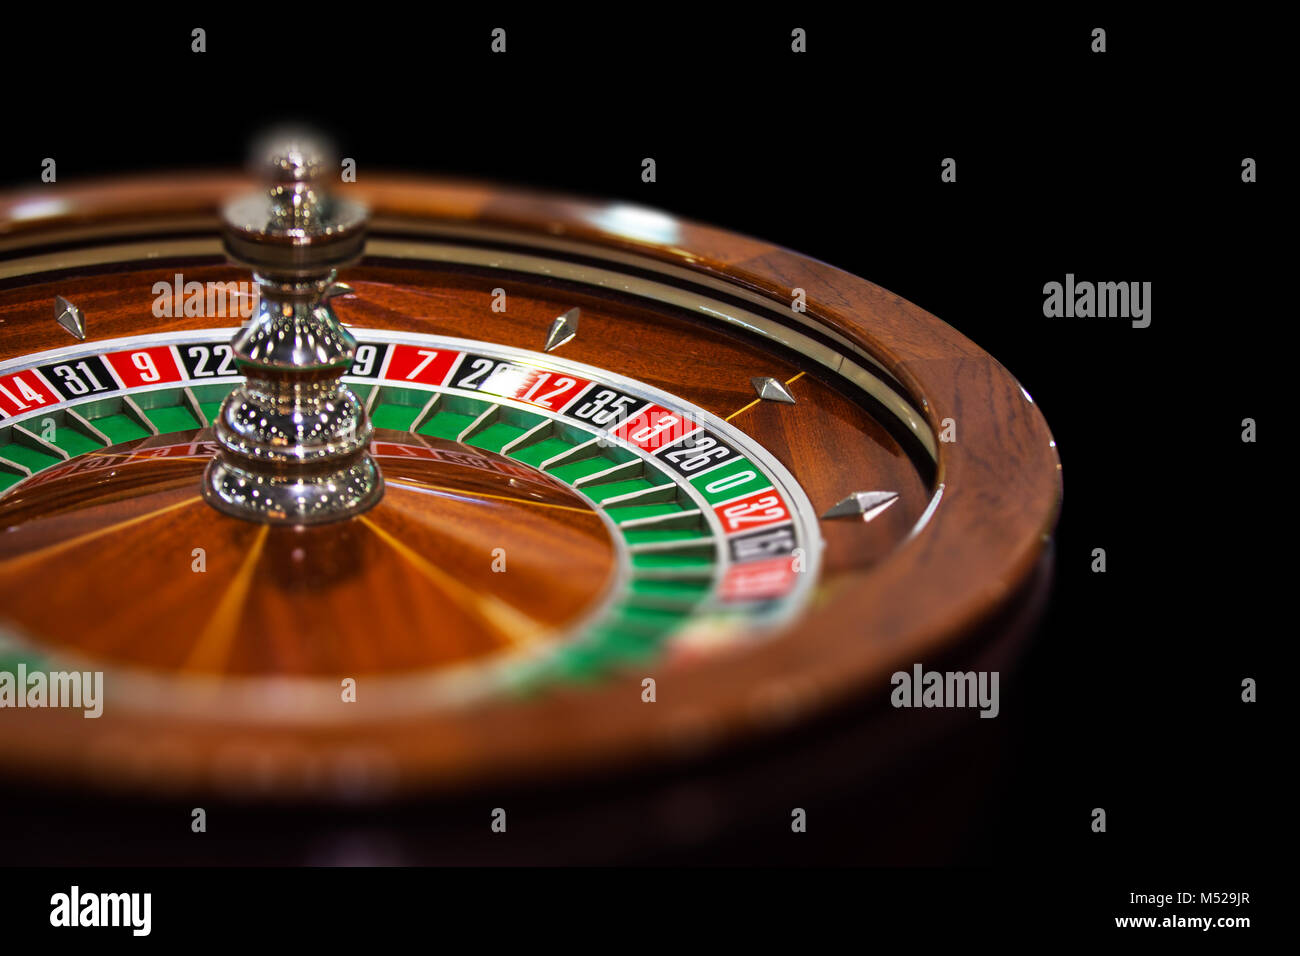 Roulette Casino Gambling Fortune Close up - Stock Image